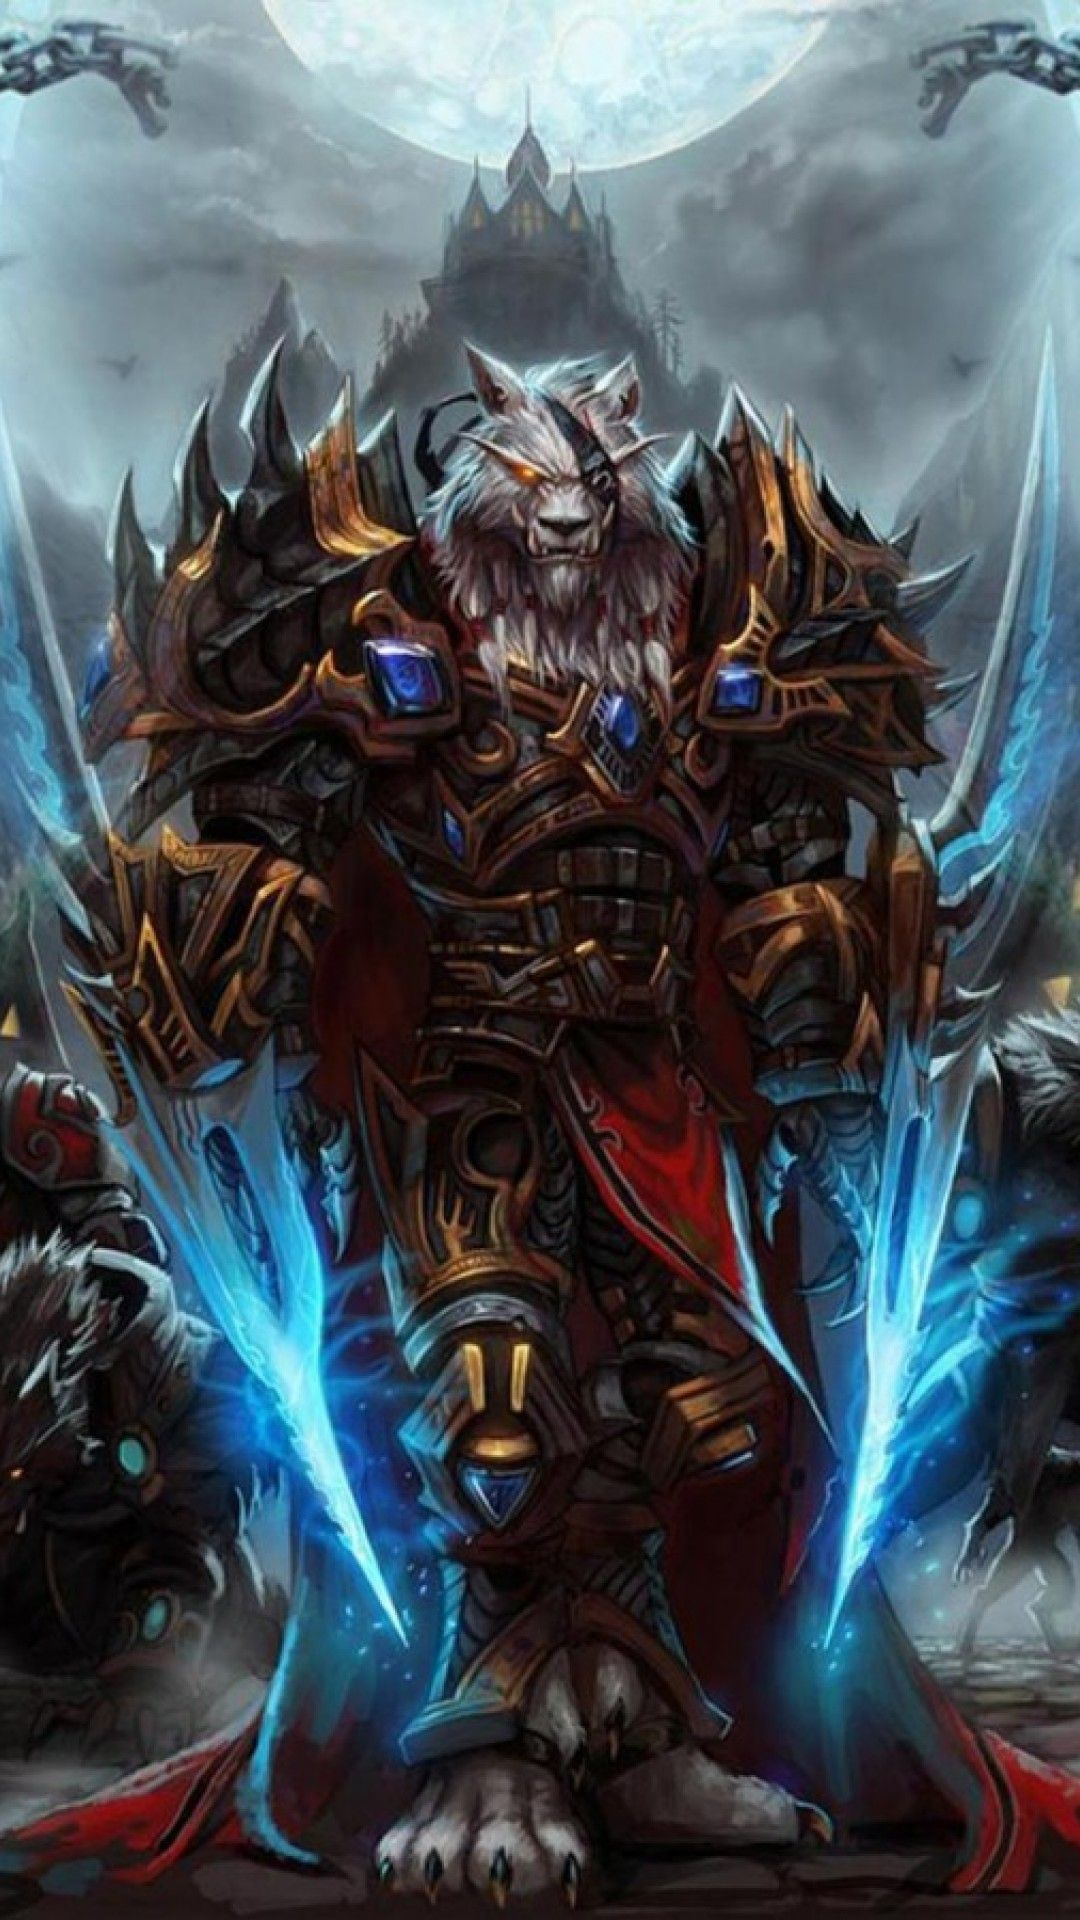 World Of Warcraft Wallpapers For Iphone Iphone Plus Iphone Warcraft Art World Of Warcraft Warcraft